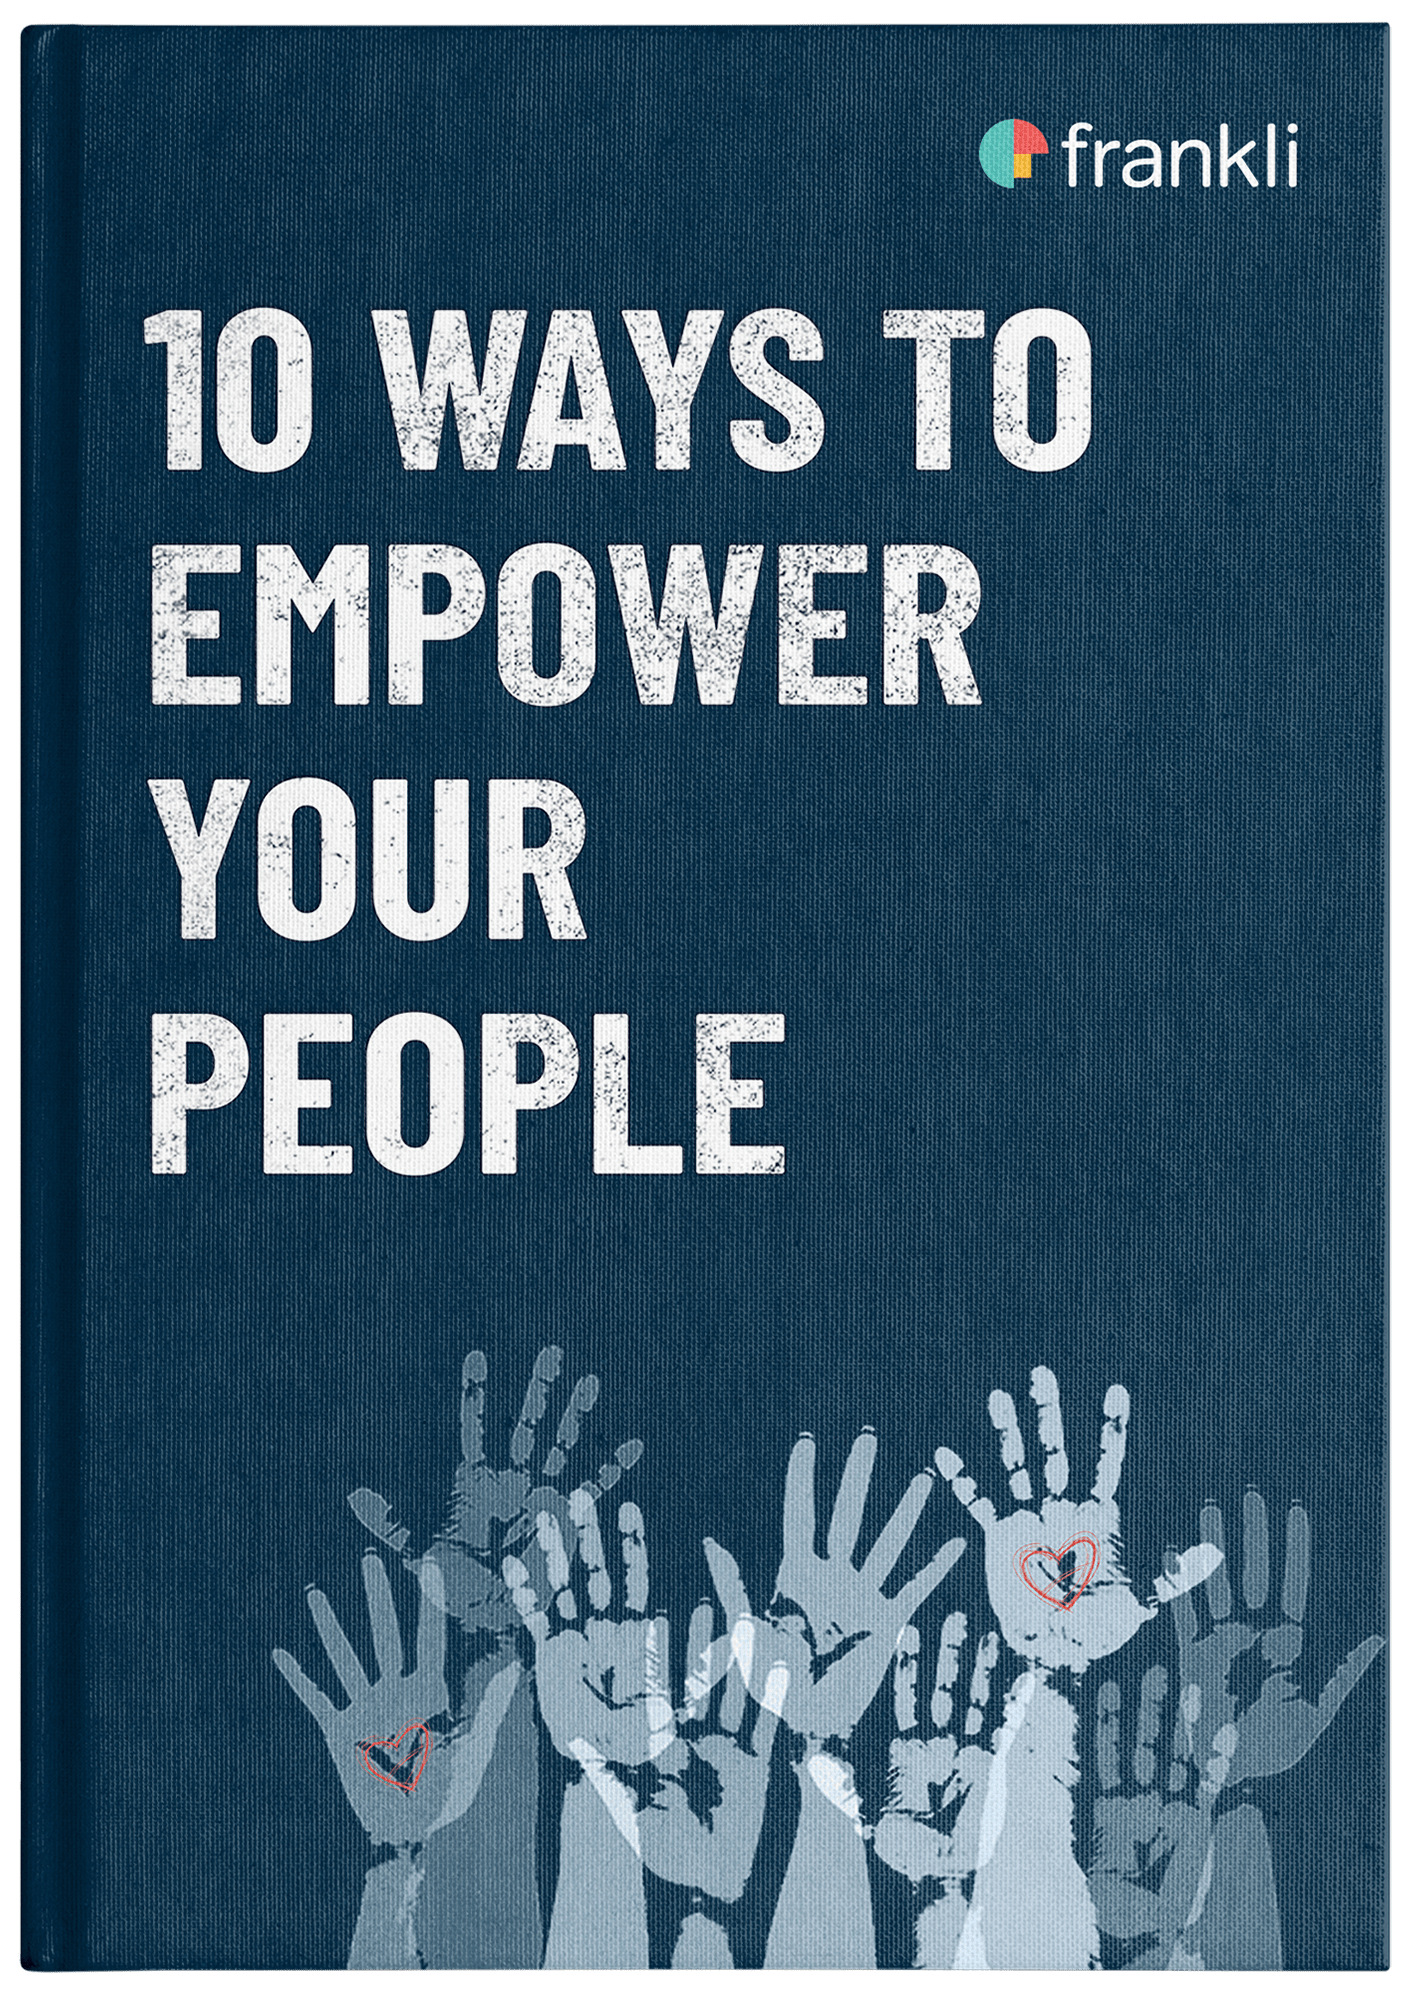 eBook cover in the frankli branded colour scheme for the eBook '10 Ways to Empower your people  '